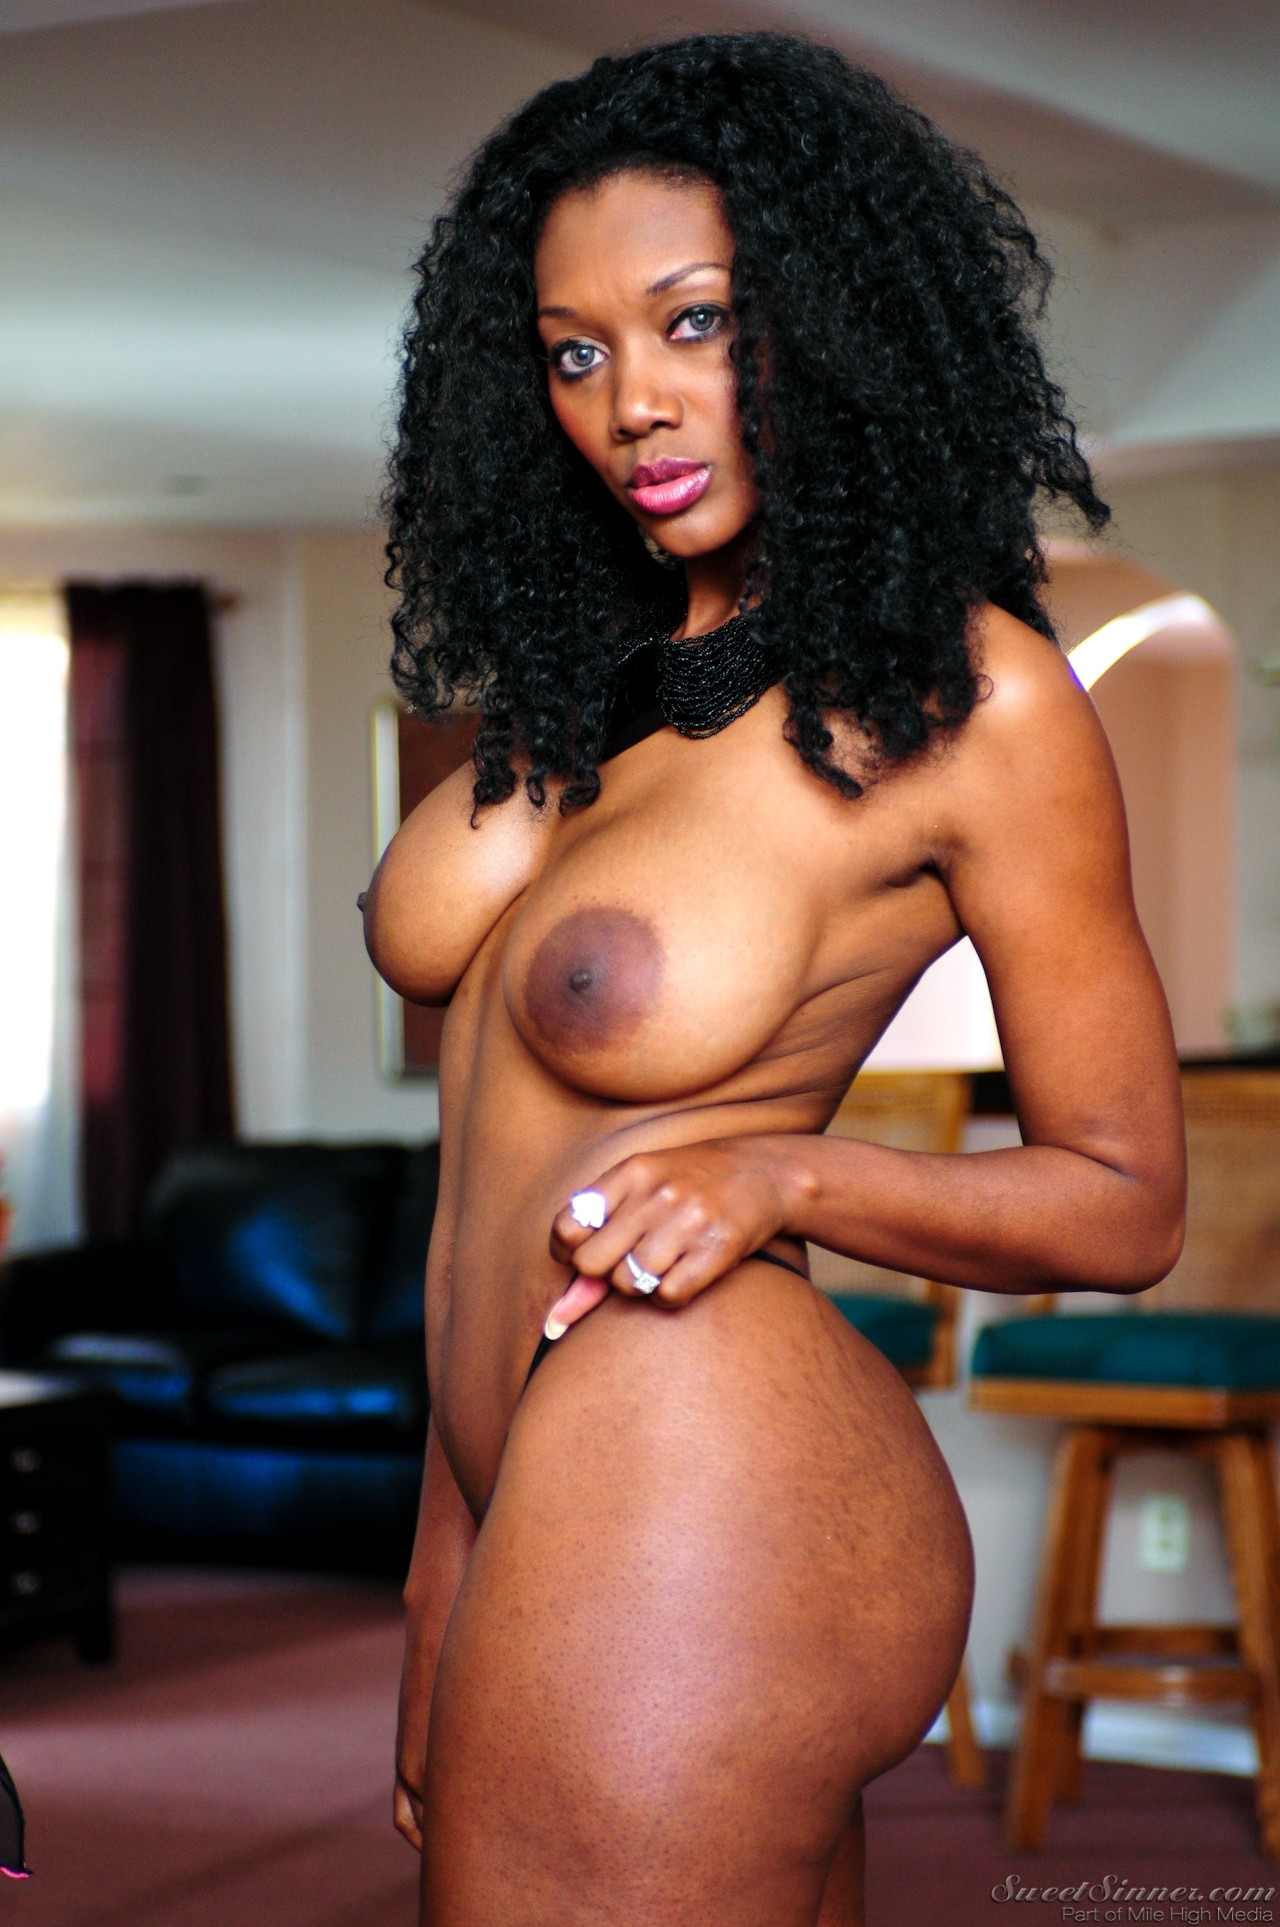 Nyomi Banxxx - My Mothers Best Friend Volume 02 77169-3175